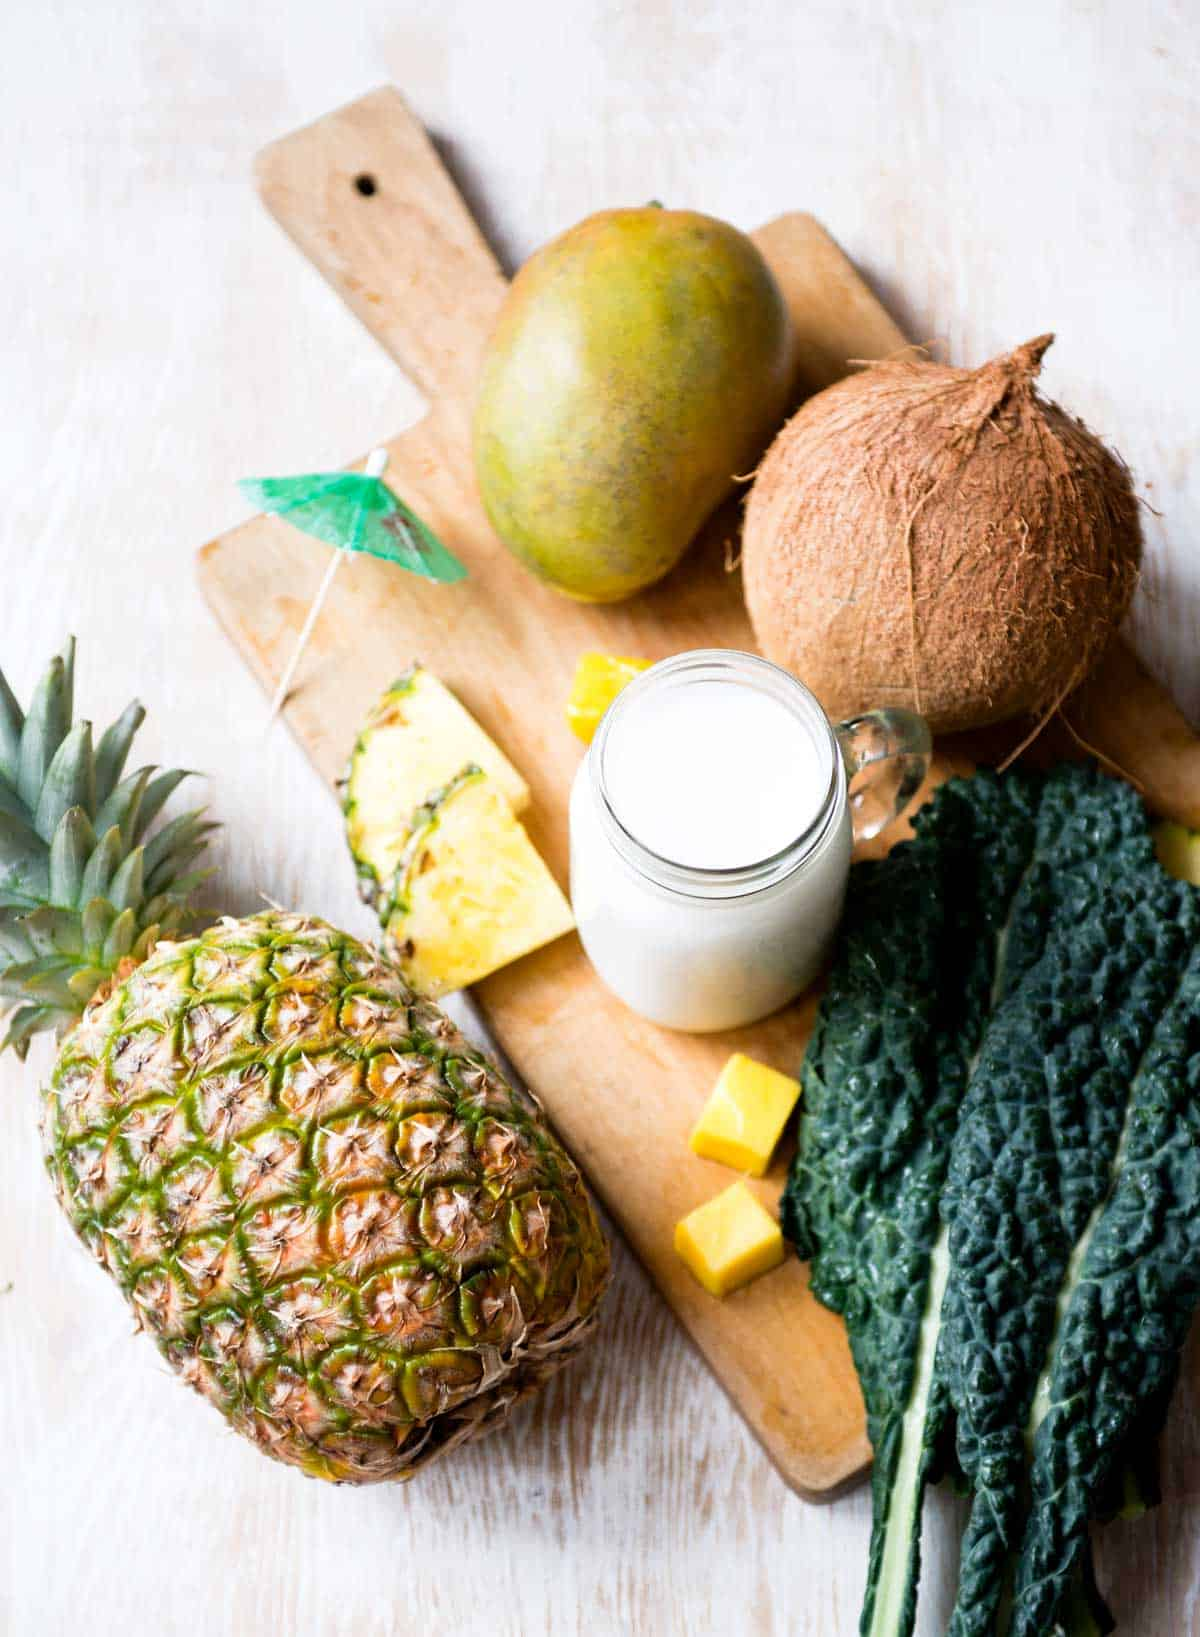 Kale, mango, coconut milk and pineapple to make a smoothie